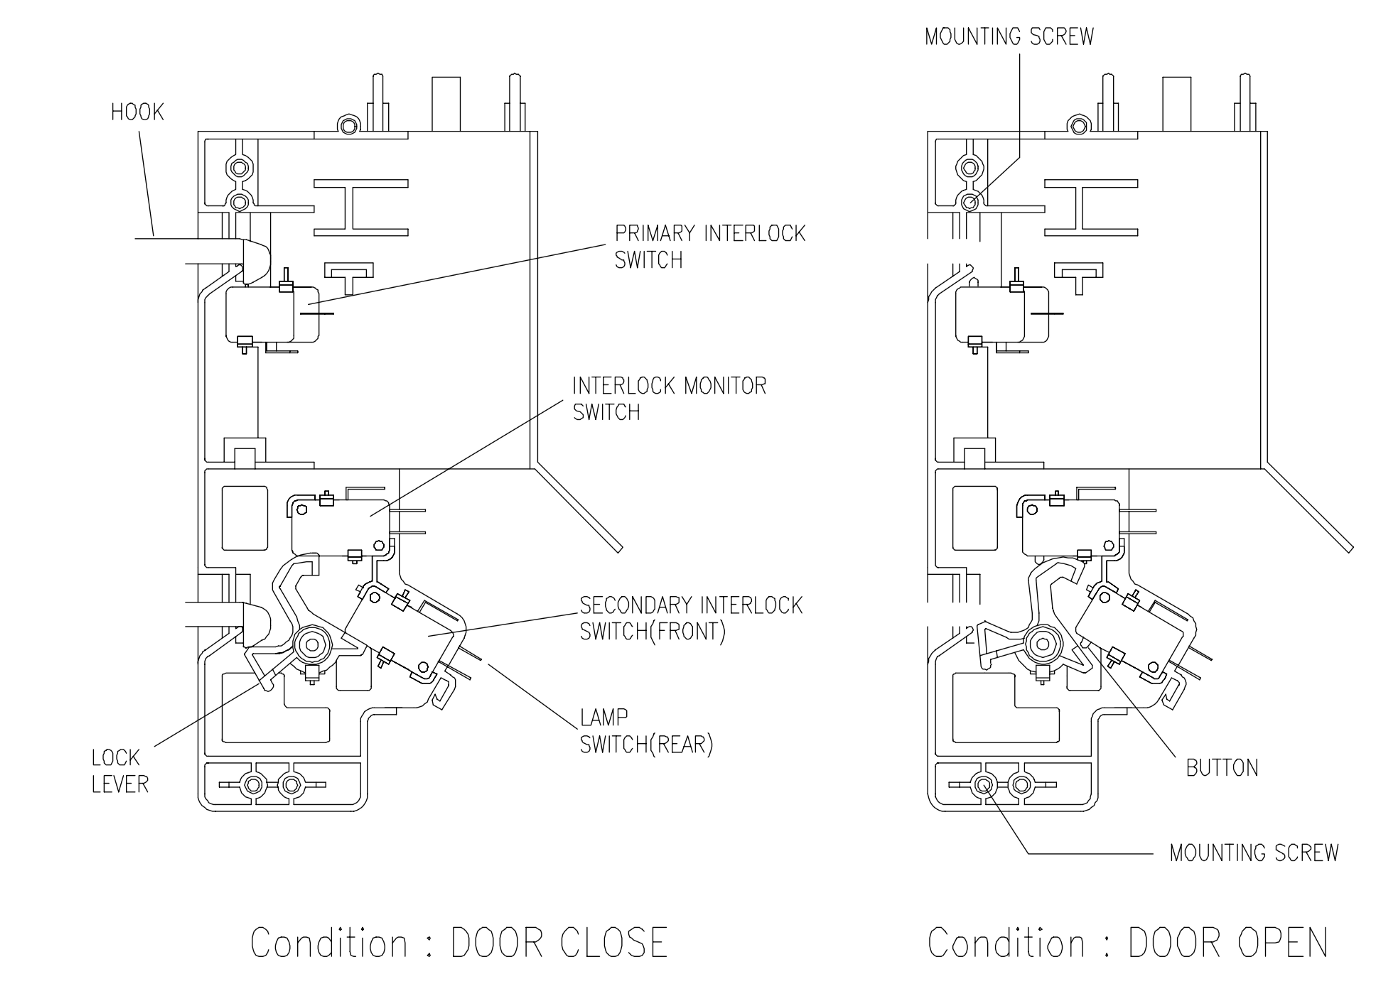 hight resolution of emerson microwave wiring diagram wiring diagram wiringeb844 emerson 3 hp pool spa motor 208230 vac 3450 rpm